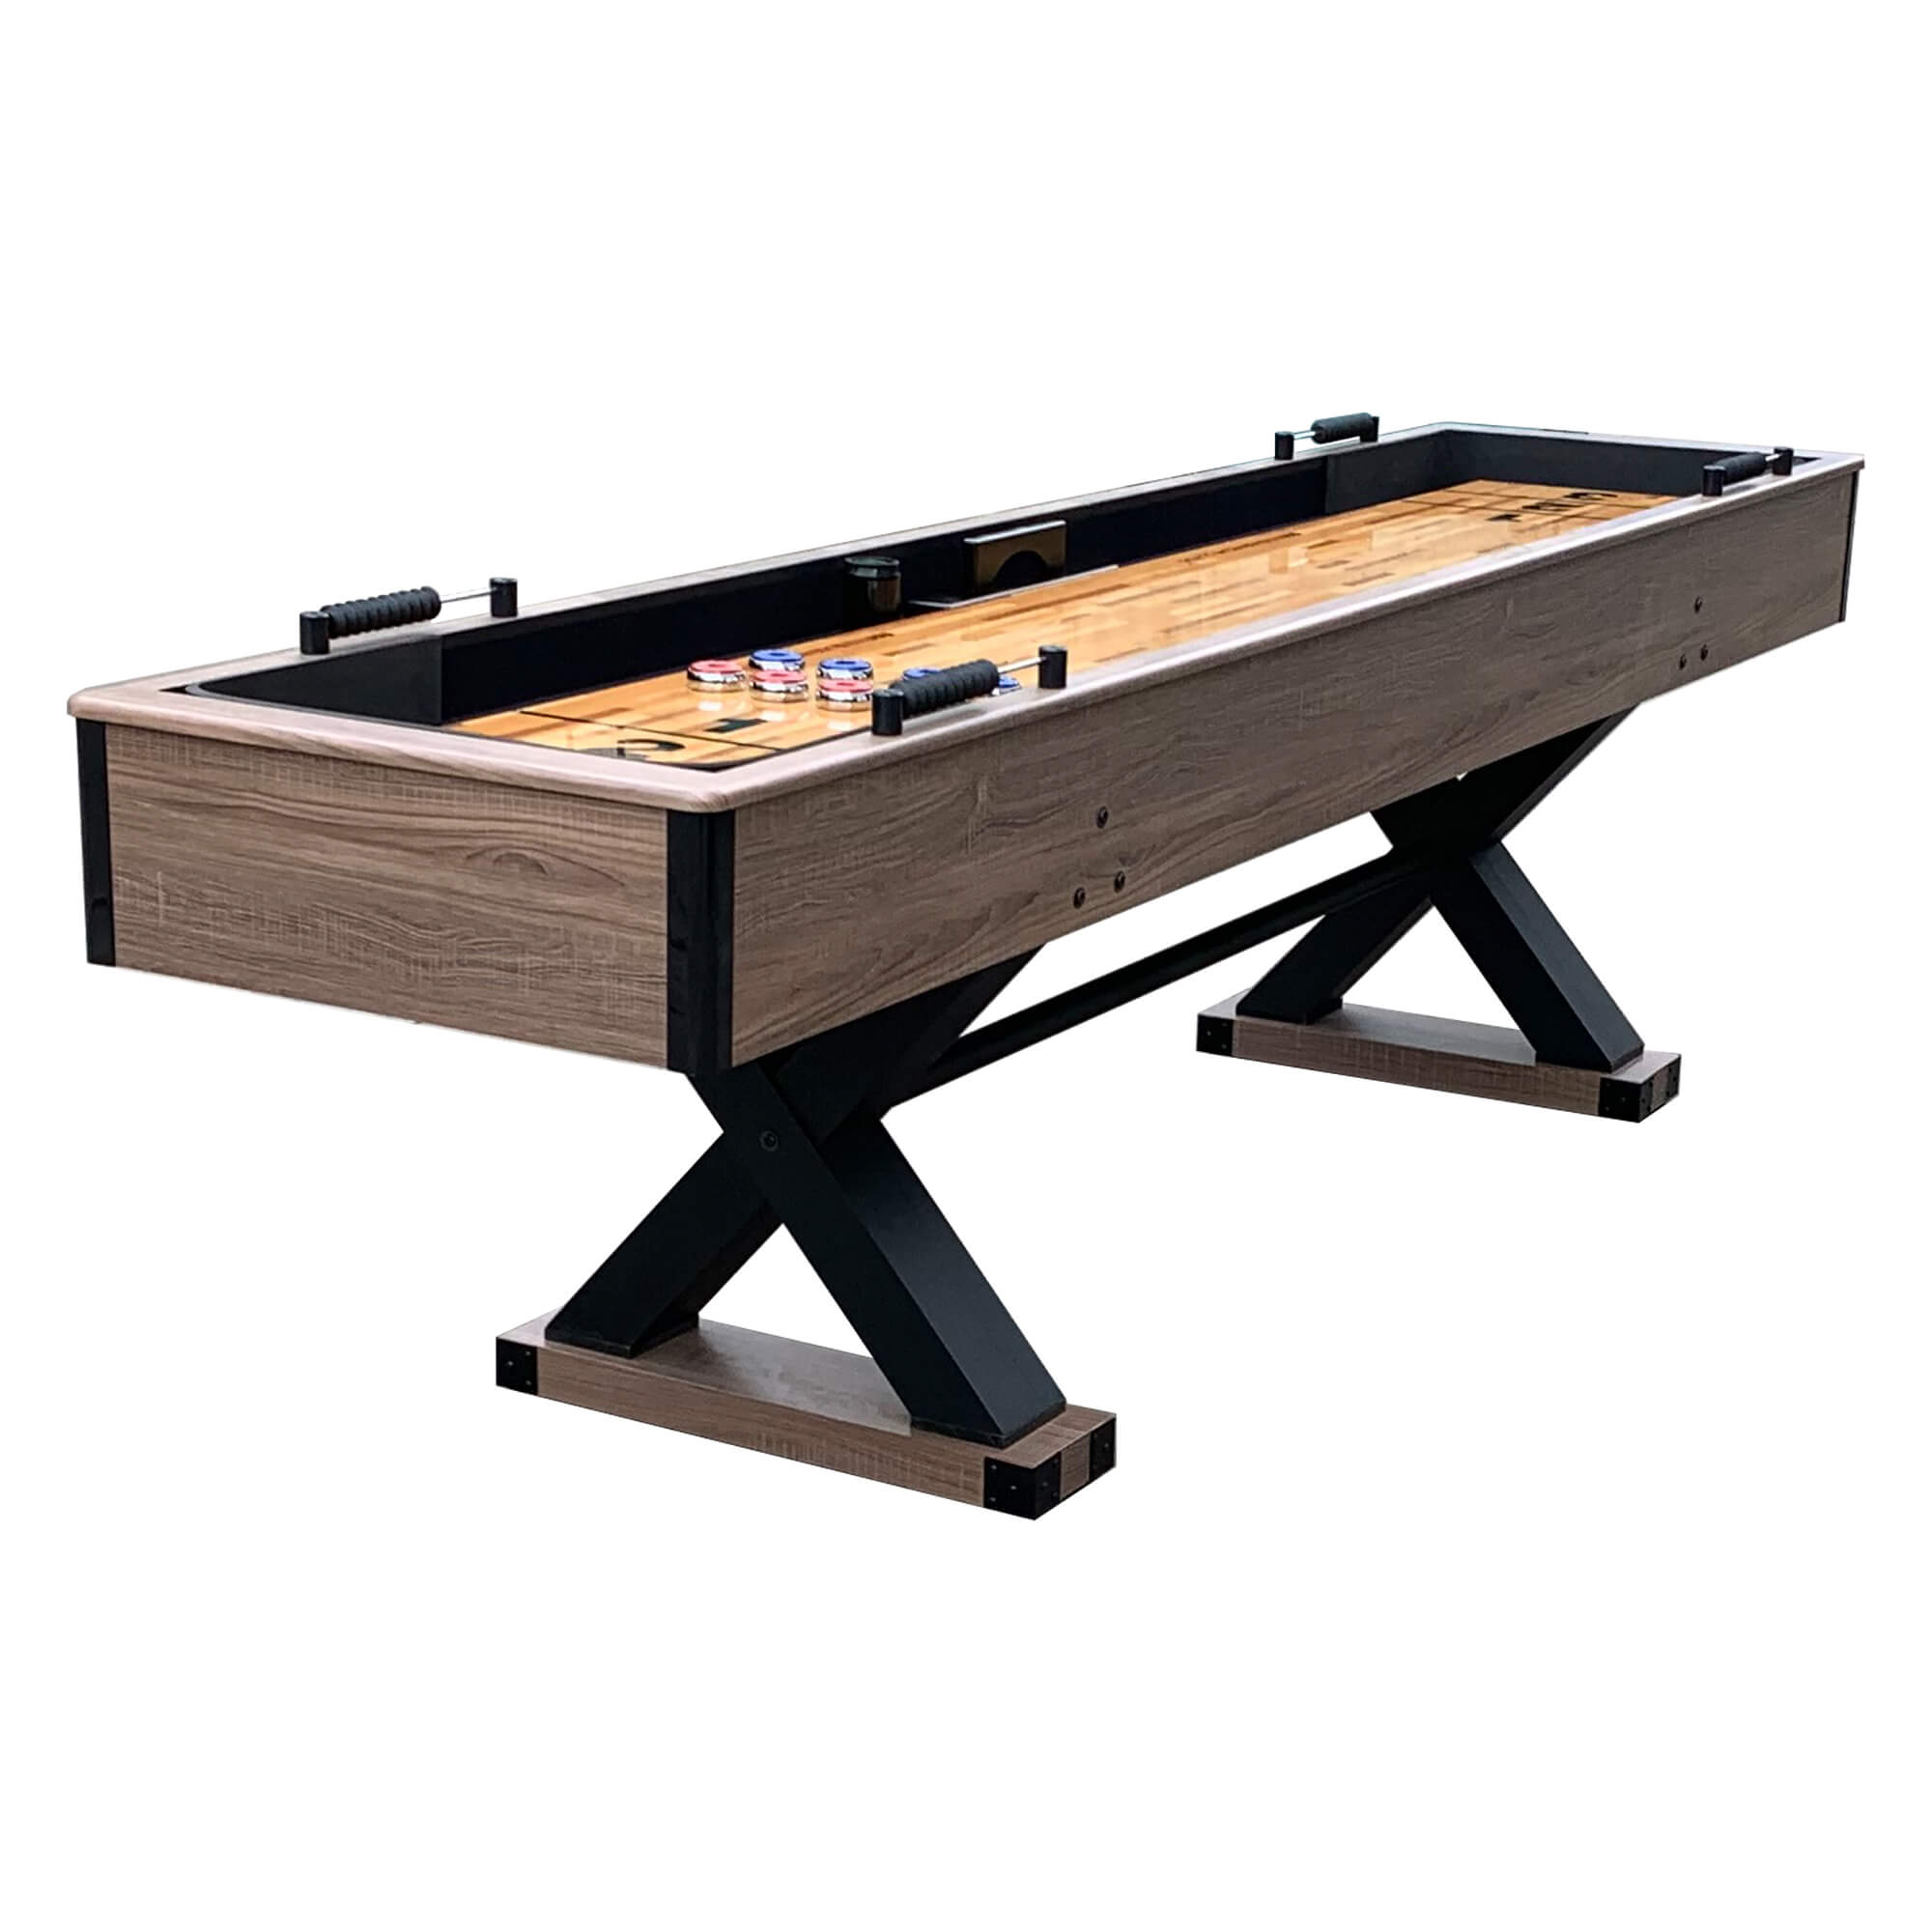 Hathaway Excalibur 9ft Shuffleboard Table - Gaming Blaze